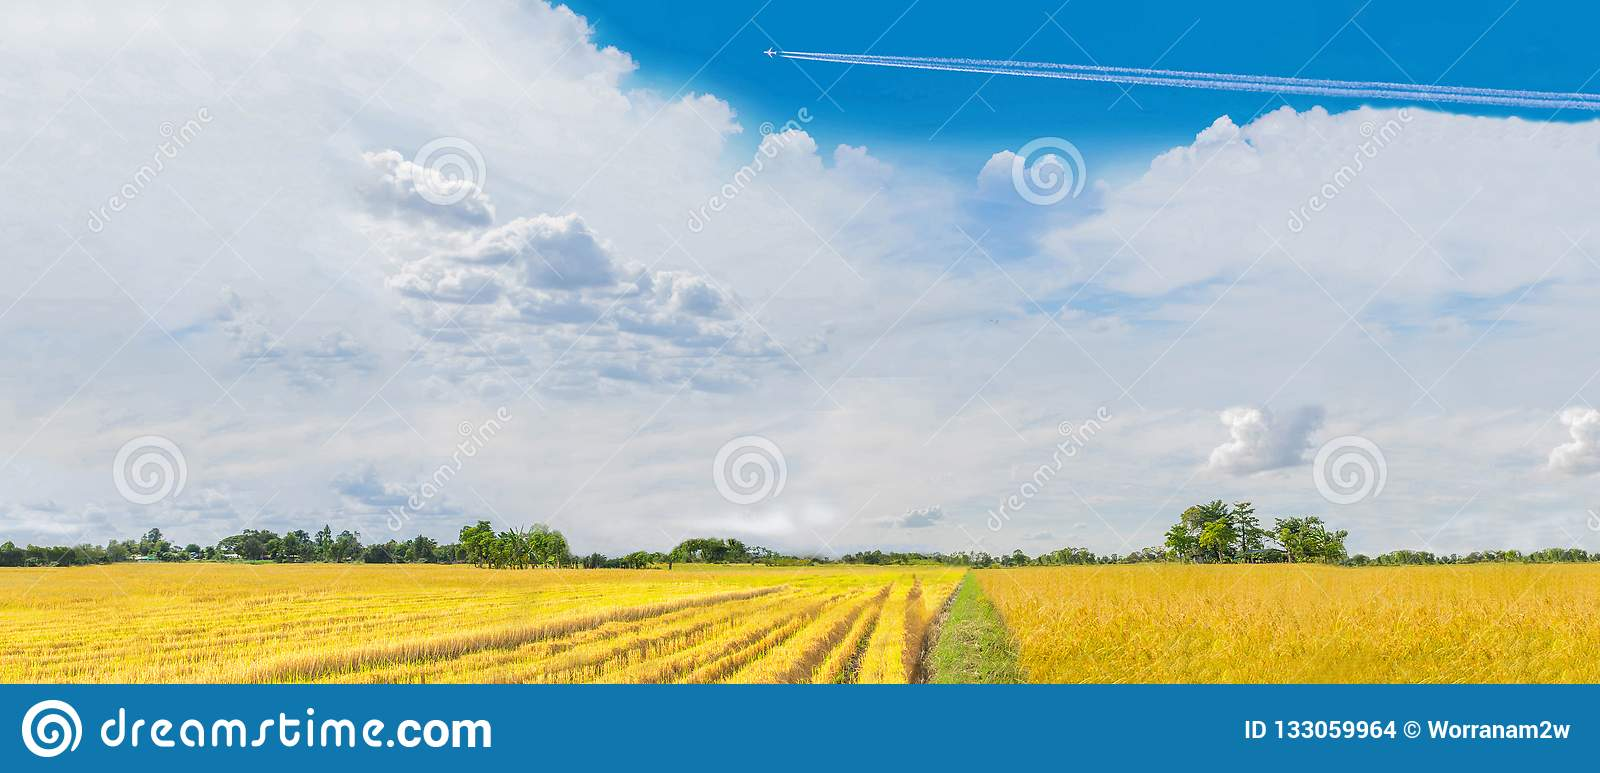 Panorama Harvest Season, Semi Harvest Of Paddy Rice Fie Stock Photo